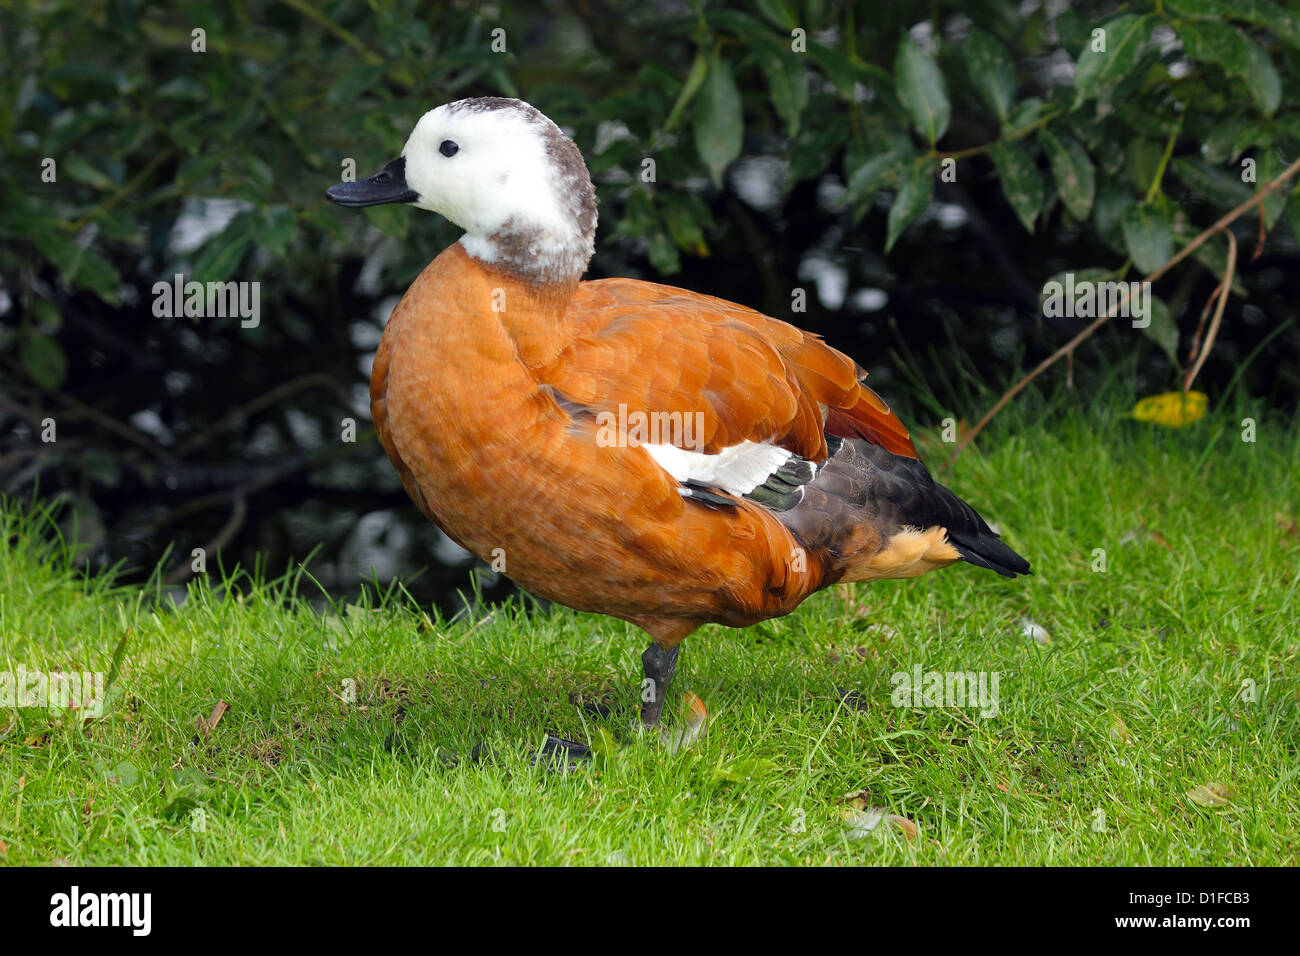 South African Shelduck (Tadorna cana) part of the bird family Anatidae, South Africa, in captivity in the United - Stock Image